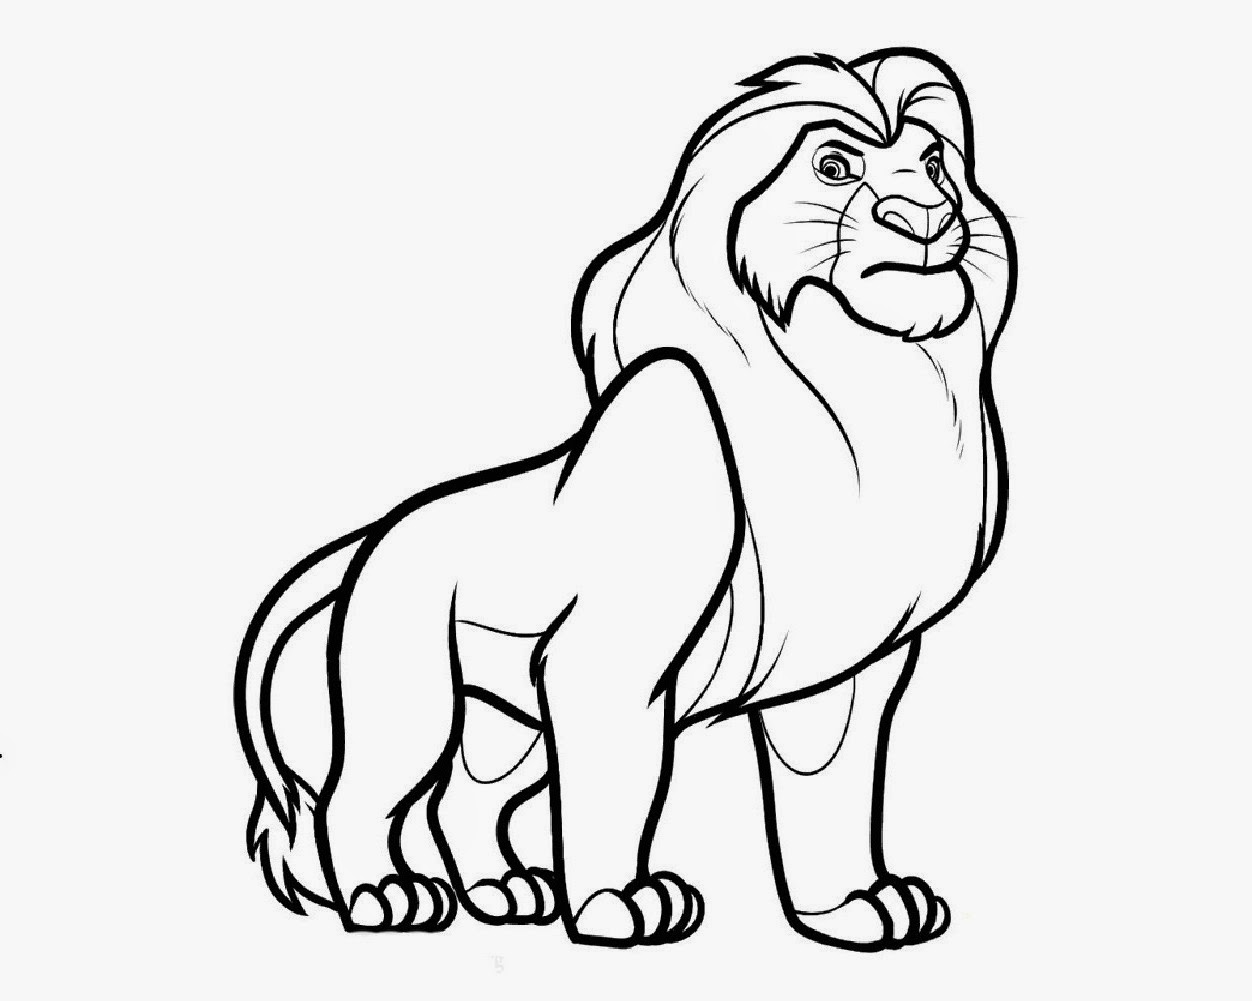 1252x1001 Colour Drawing Free Wallpaper Disney Cartoon The Lion King